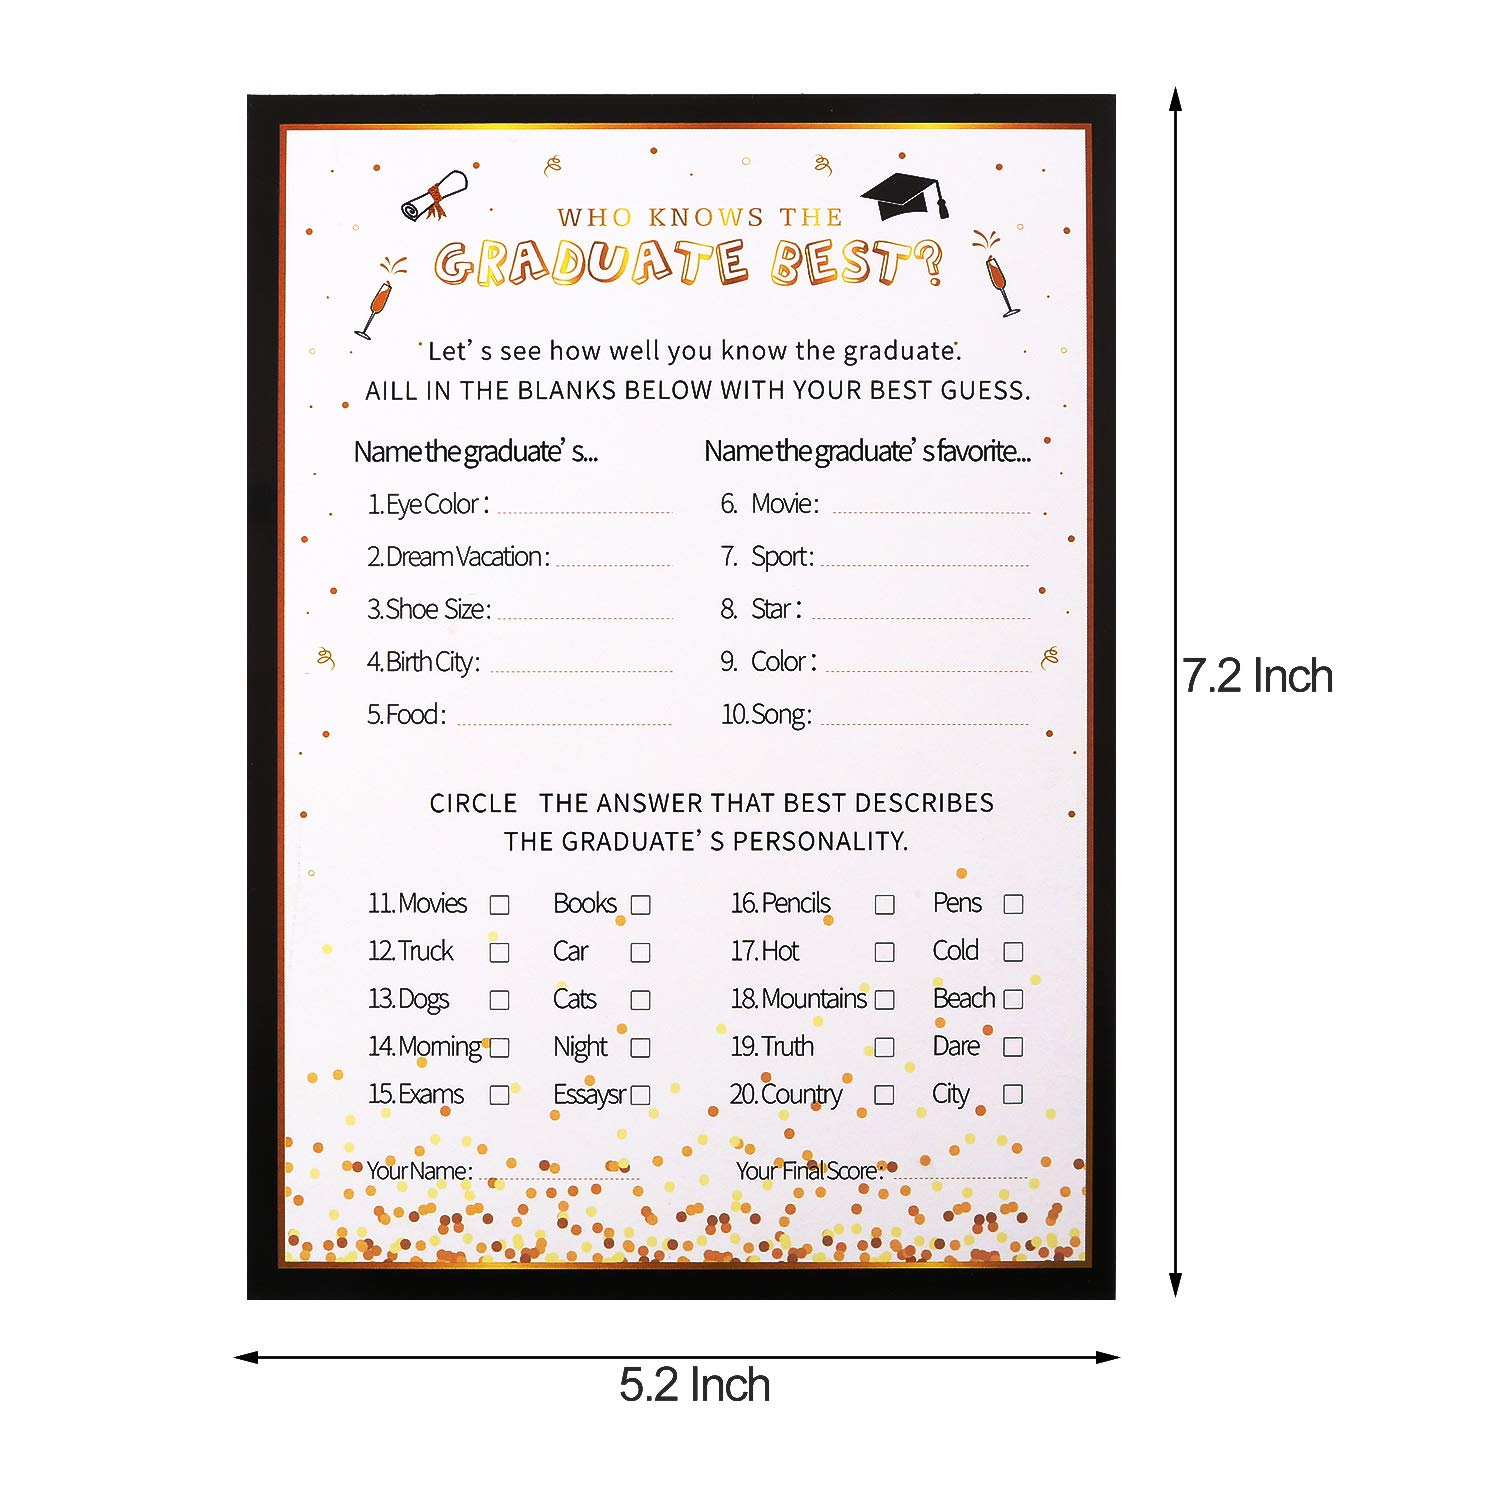 Yaomiao 48 Sheets 2019 Graduation Advice Cards Graduation Invitations Cards Party Games Activities for Graduation Supplies 4 Styles